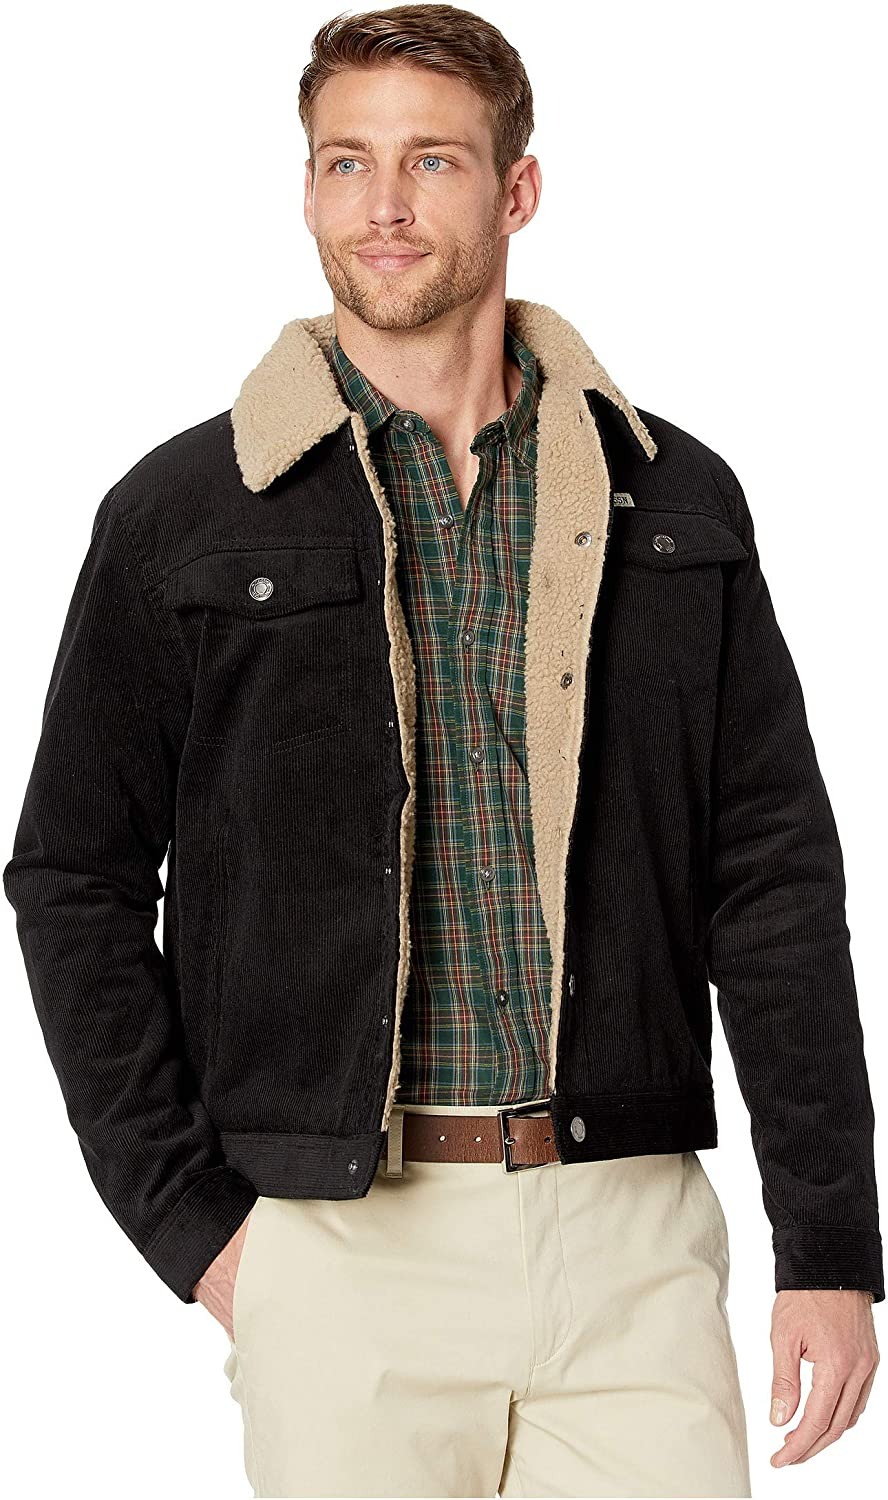 U.S. Polo Assn. mens Jacket Price reduction Corduroy Jean Outlet ☆ Free Shipping